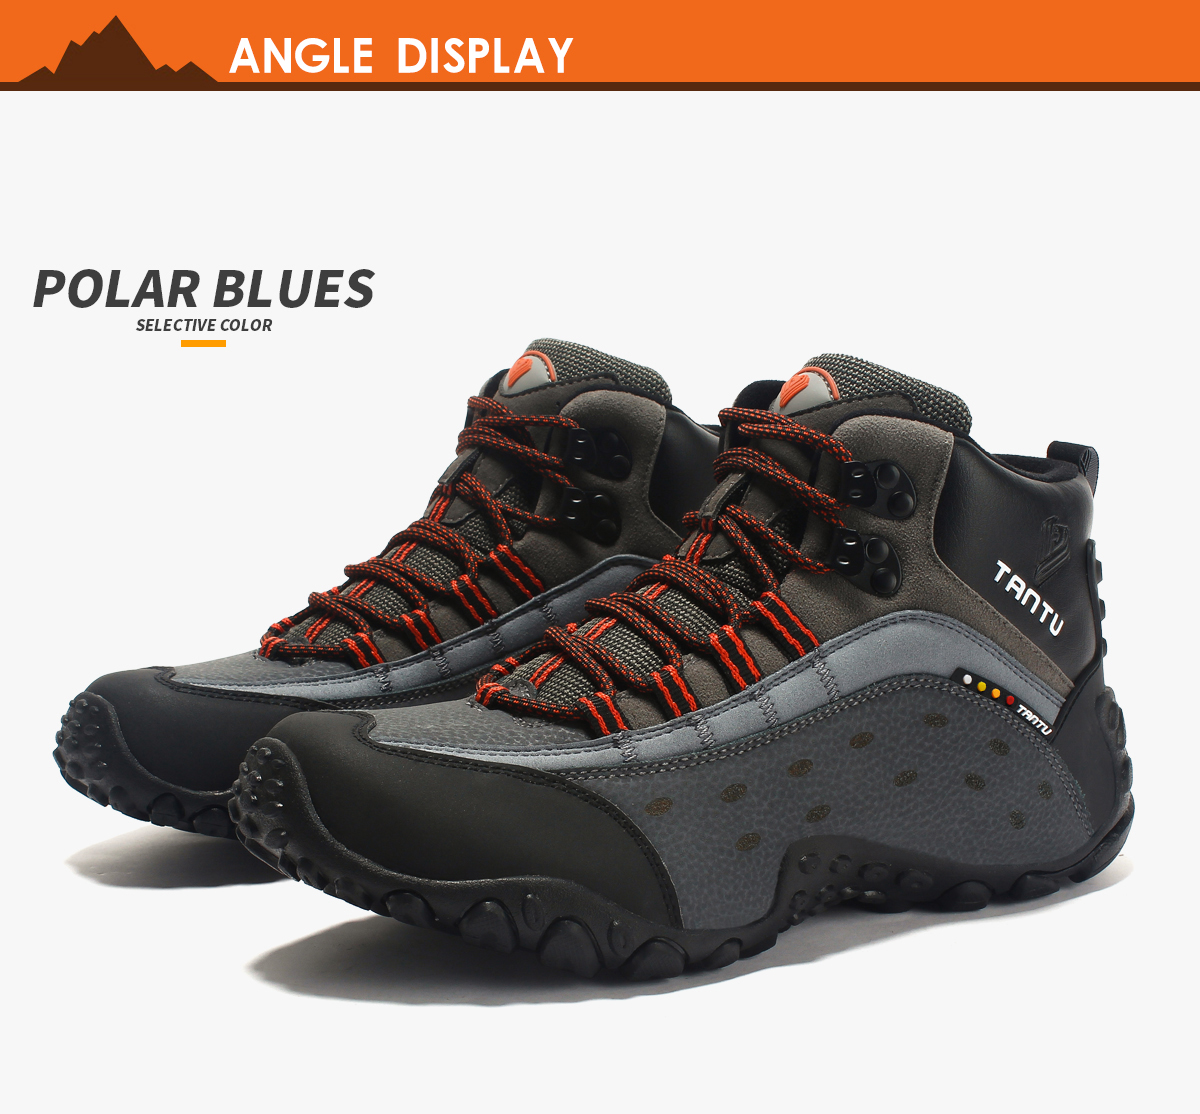 5aa13f90d1a5e LeFoche 2018 Men's Mid Venture Waterproof Lightweight Hiking Boots Running  Shoes Outdoor Hiking Athletic Sneakers